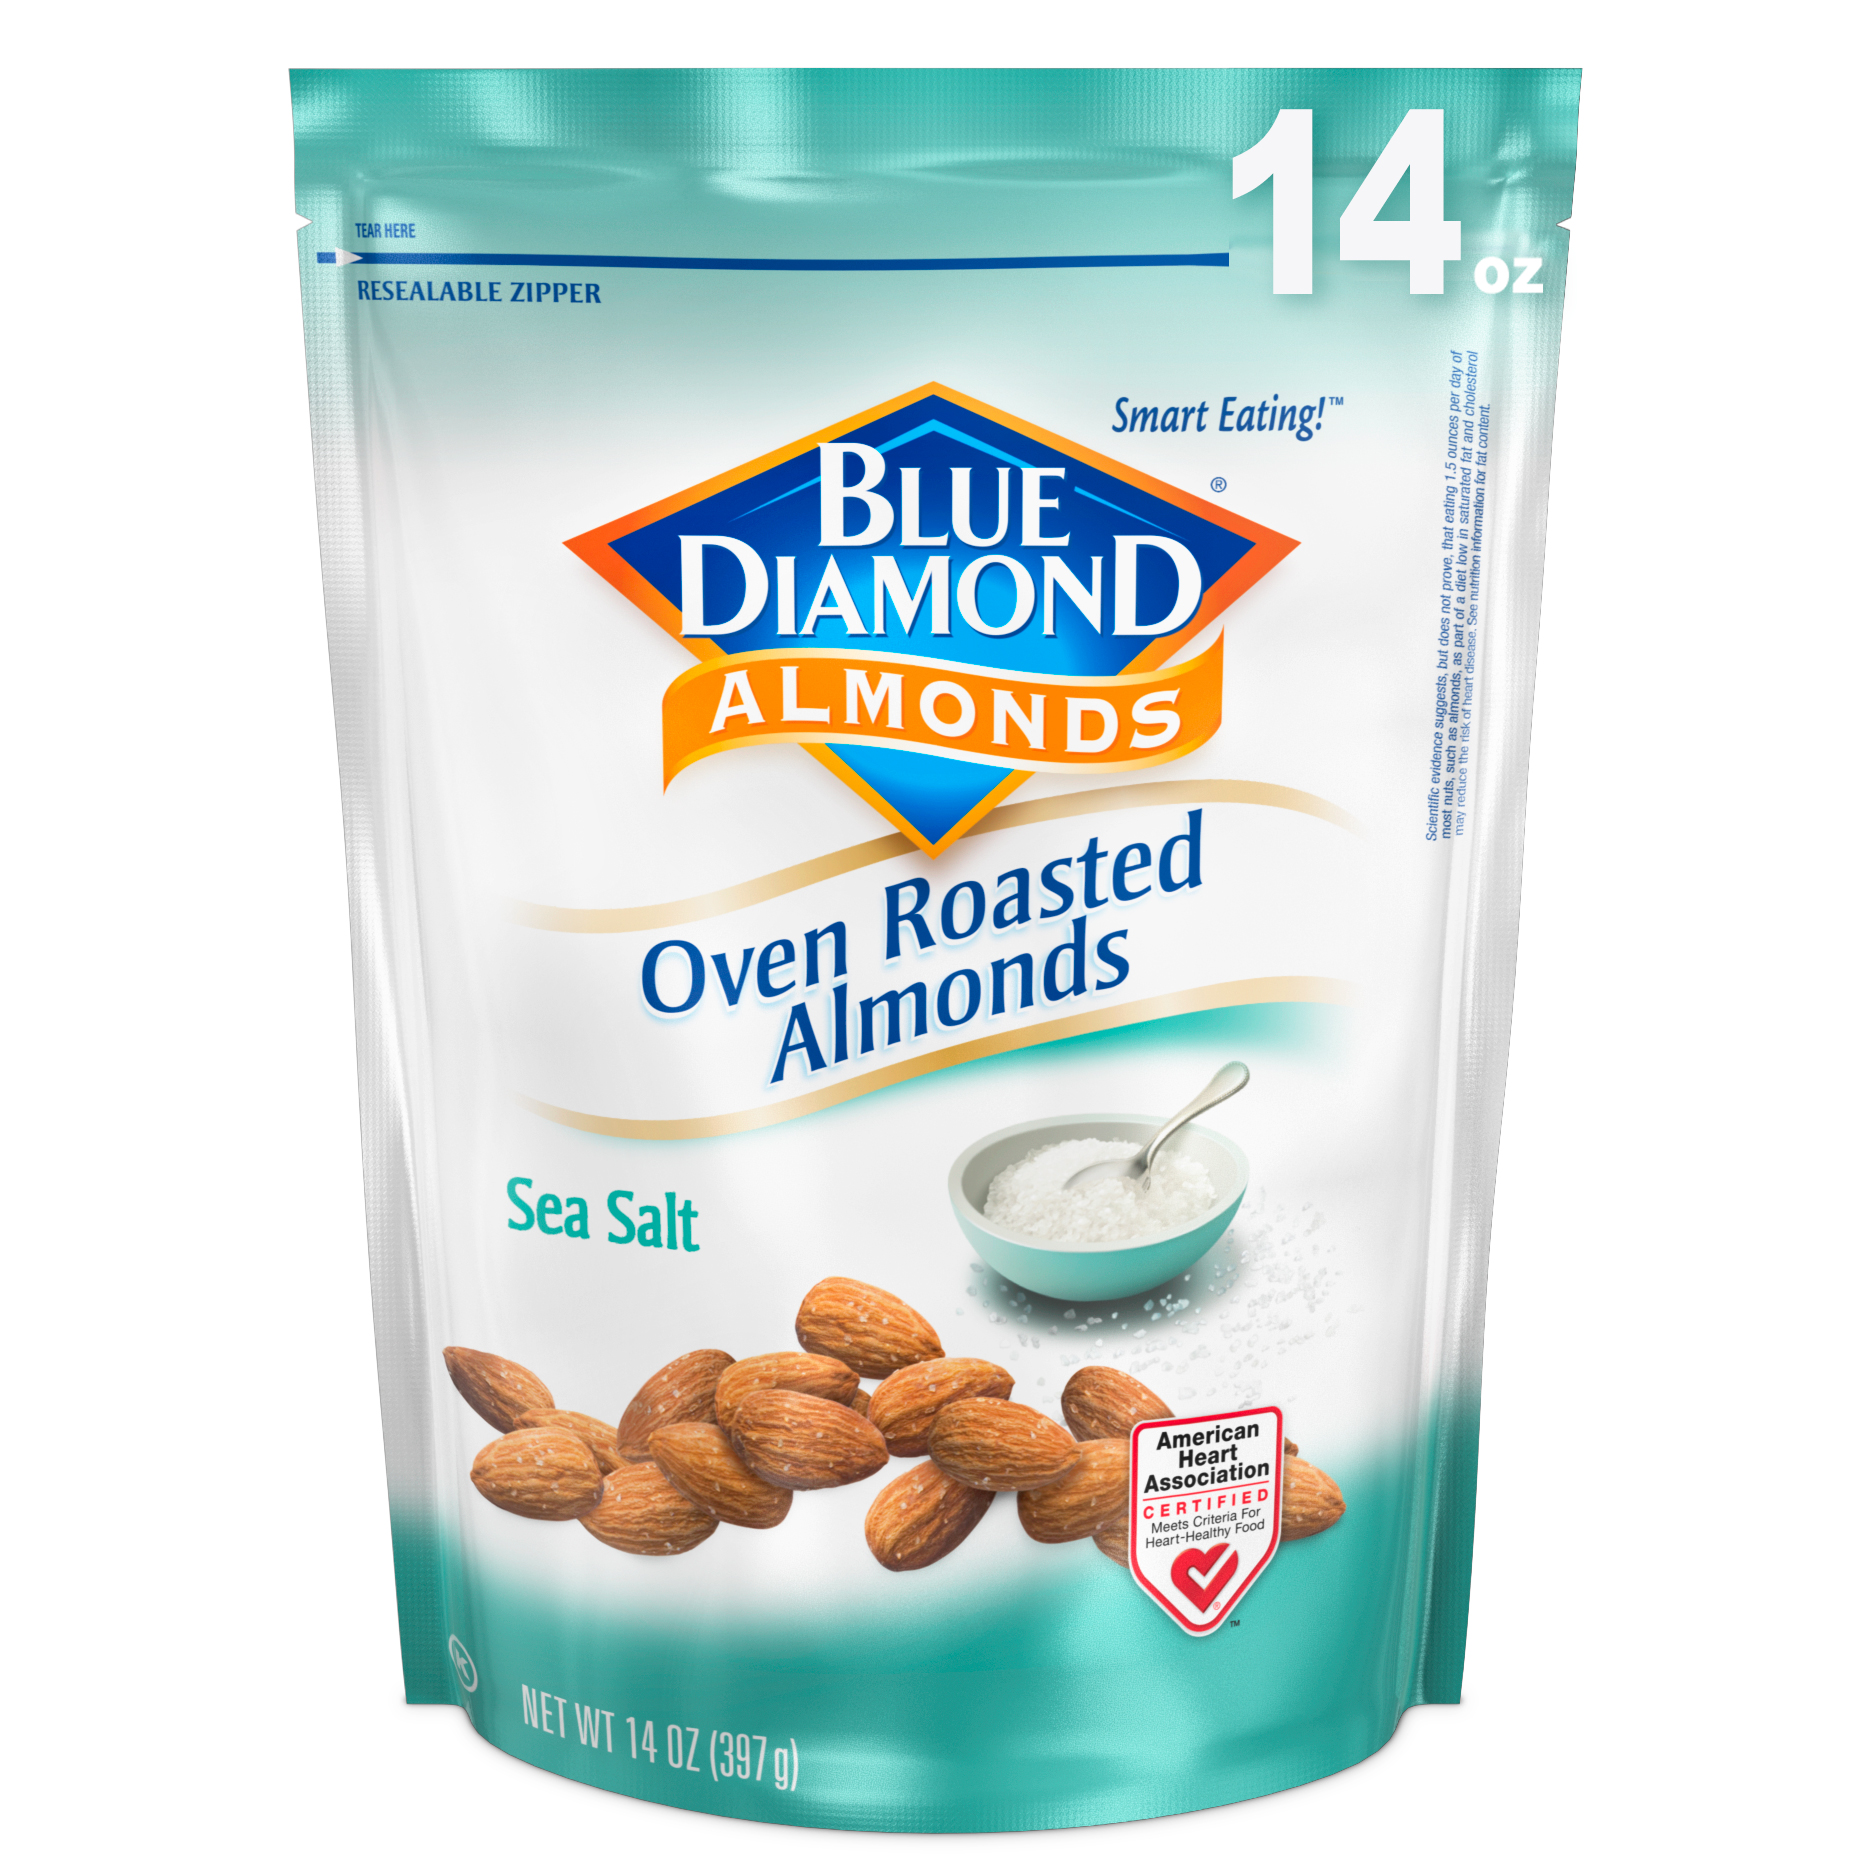 Blue Diamond Almonds Oven Roasted Sea Salt Almonds, 14 Oz.